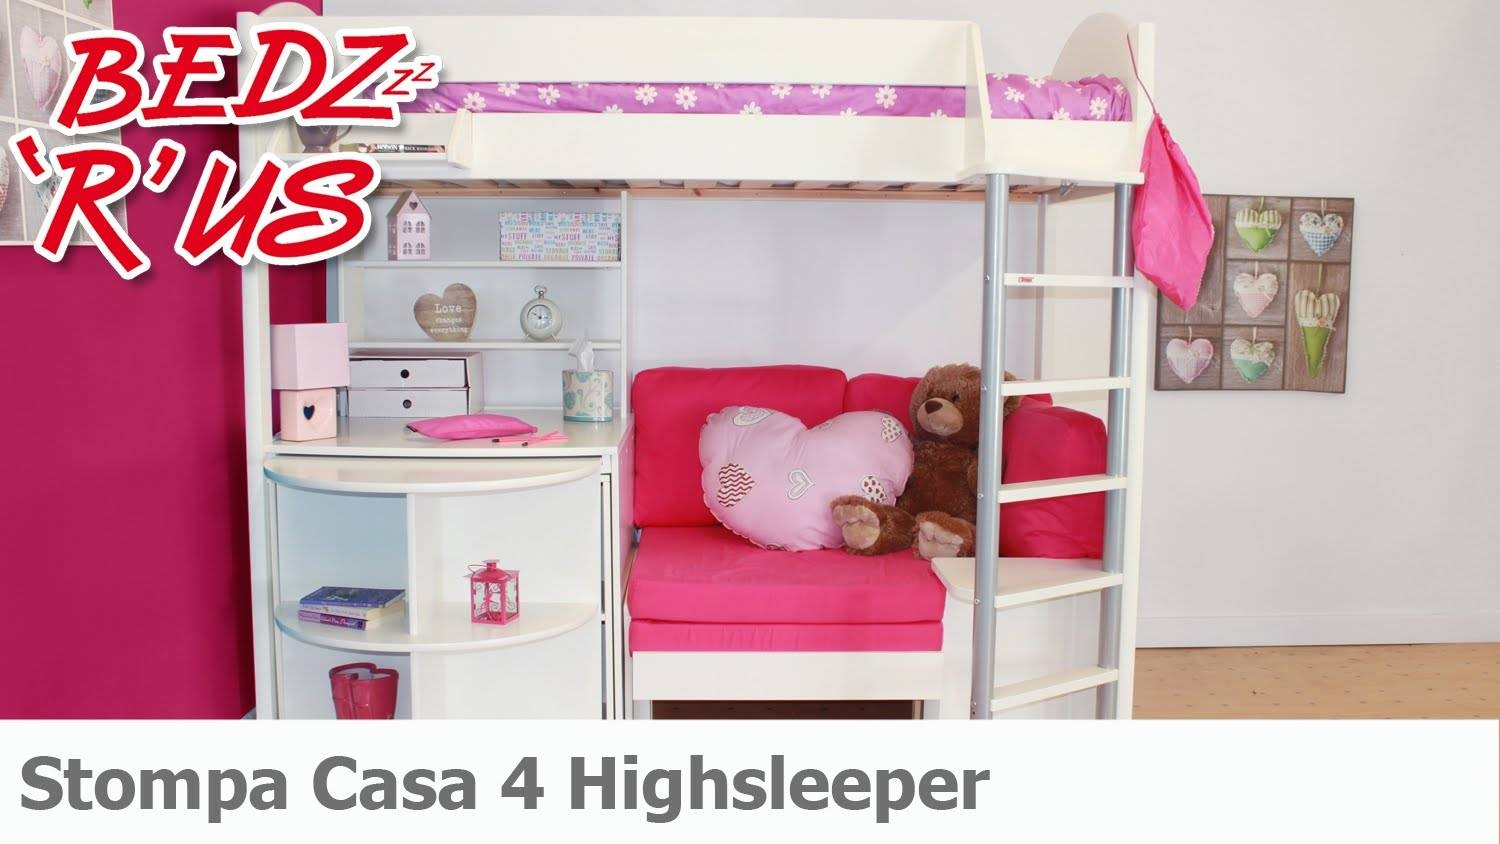 Stompa Casa 4 Highsleeper Bed - Bedzrus - Youtube for High Sleeper With Desk and Sofa (Image 26 of 30)